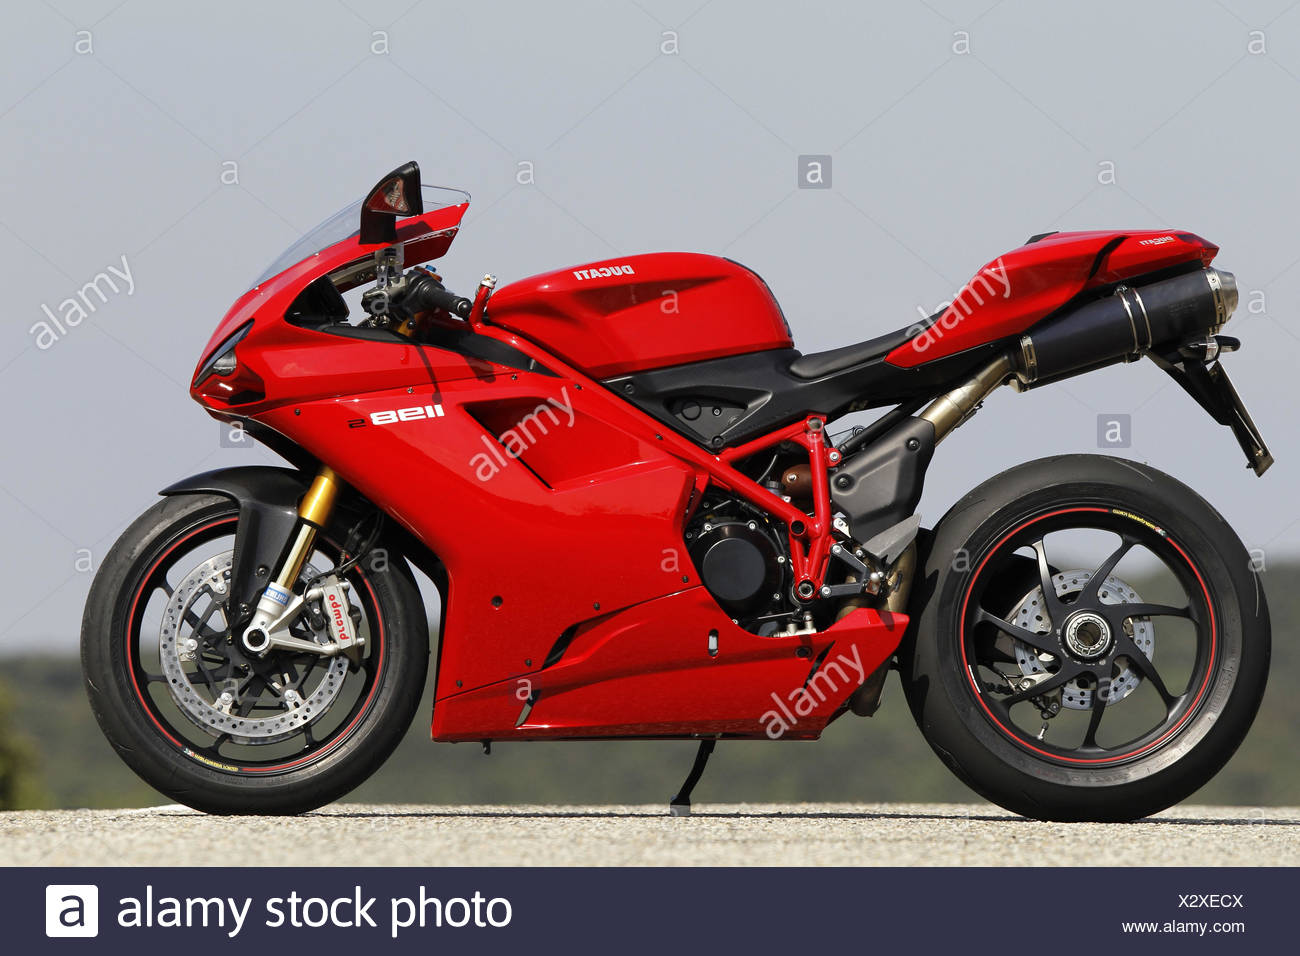 motorcycle italian 1000cc ducati 1198 s side standard right stock